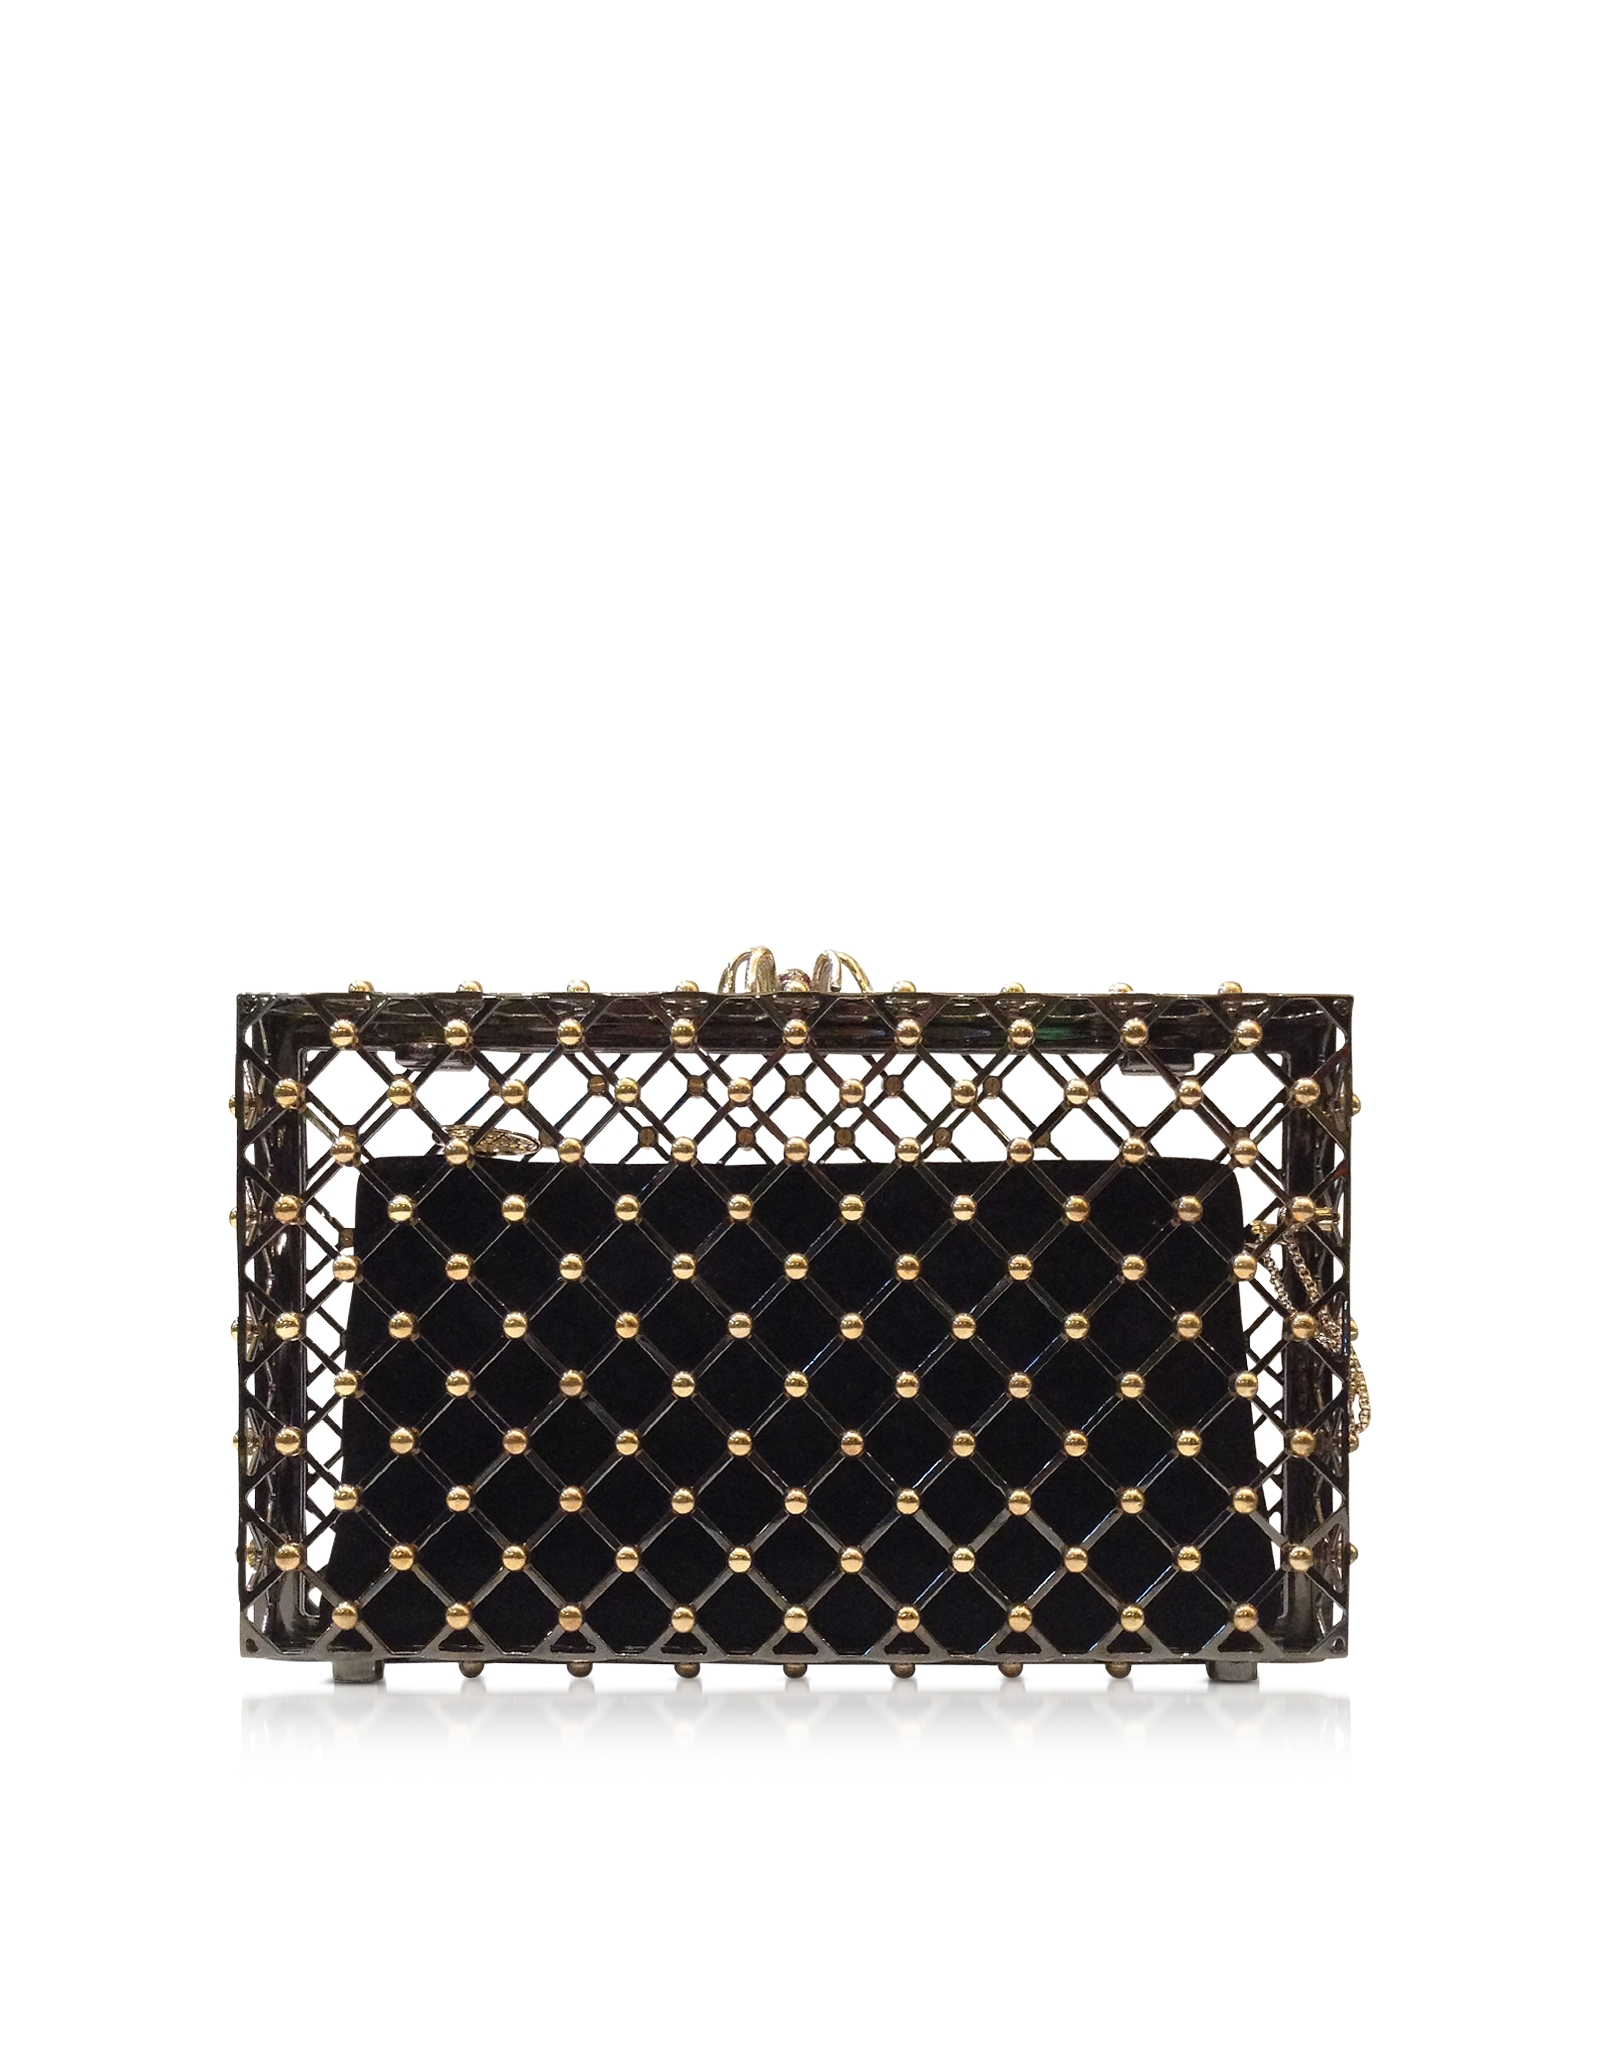 Buy Clutch at Macy's! FREE SHIPPING with $99 purchase! A great variety of clutches, evening bags & designer clutches. Shop for red, black & silver clutch.